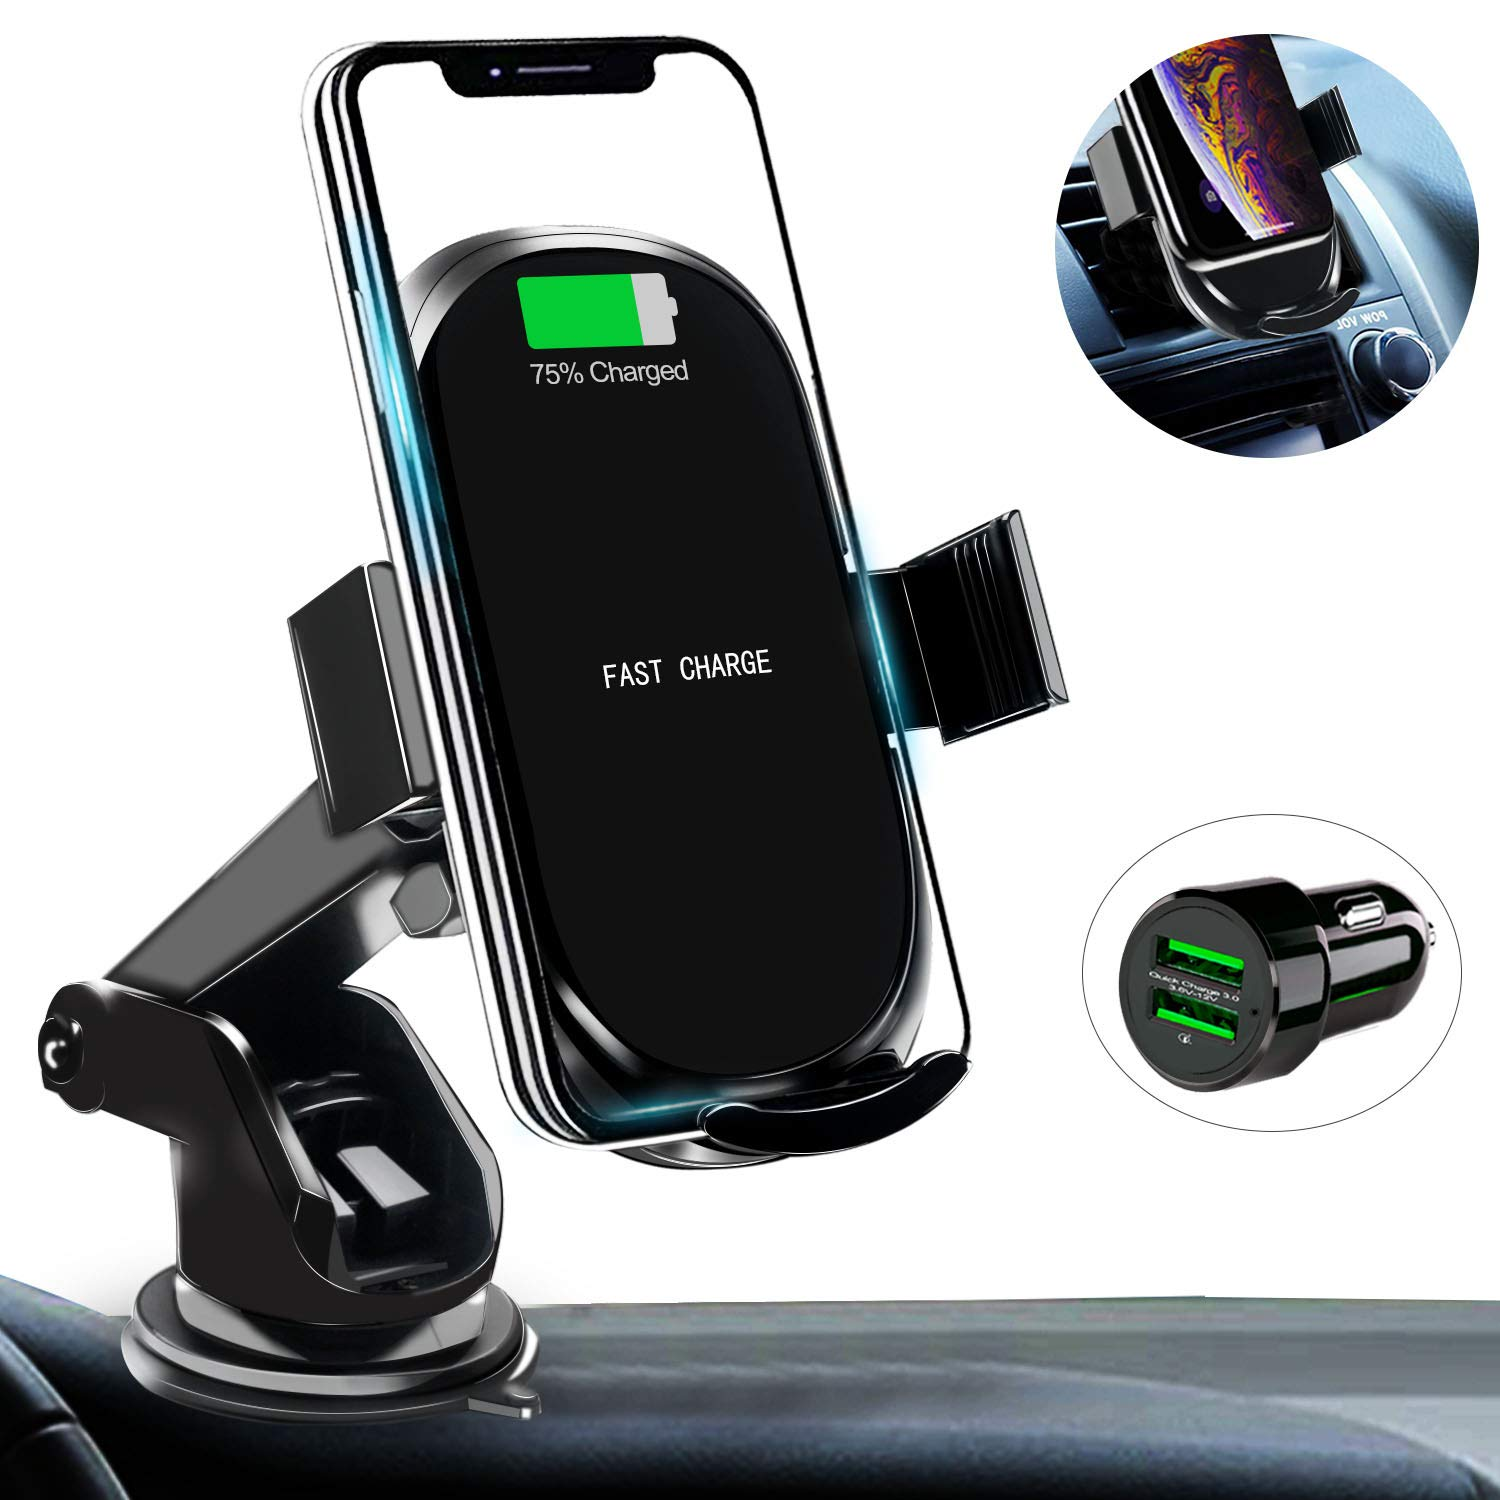 Car Wireless Charger Mount with USB Car Charger Adapter Qi Fast Charging Car Phone Holder Compatible with iPhone Xs/Xs Max/XR/X/ 8/8 Plus Samsung Galaxy S10 /S10+/S9 /S9+ by Amerzam